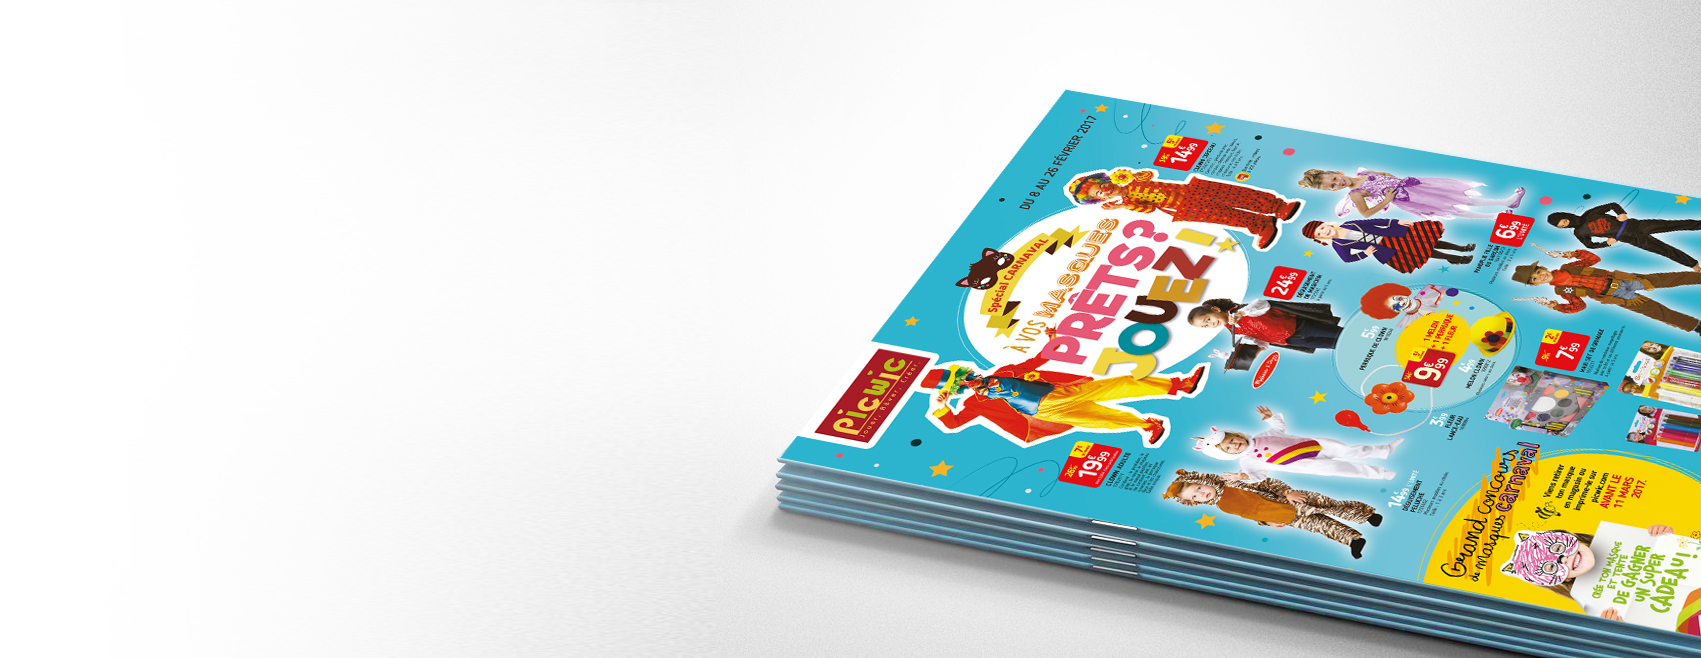 Picwic Brochure couverture Carnaval Little Big Idea